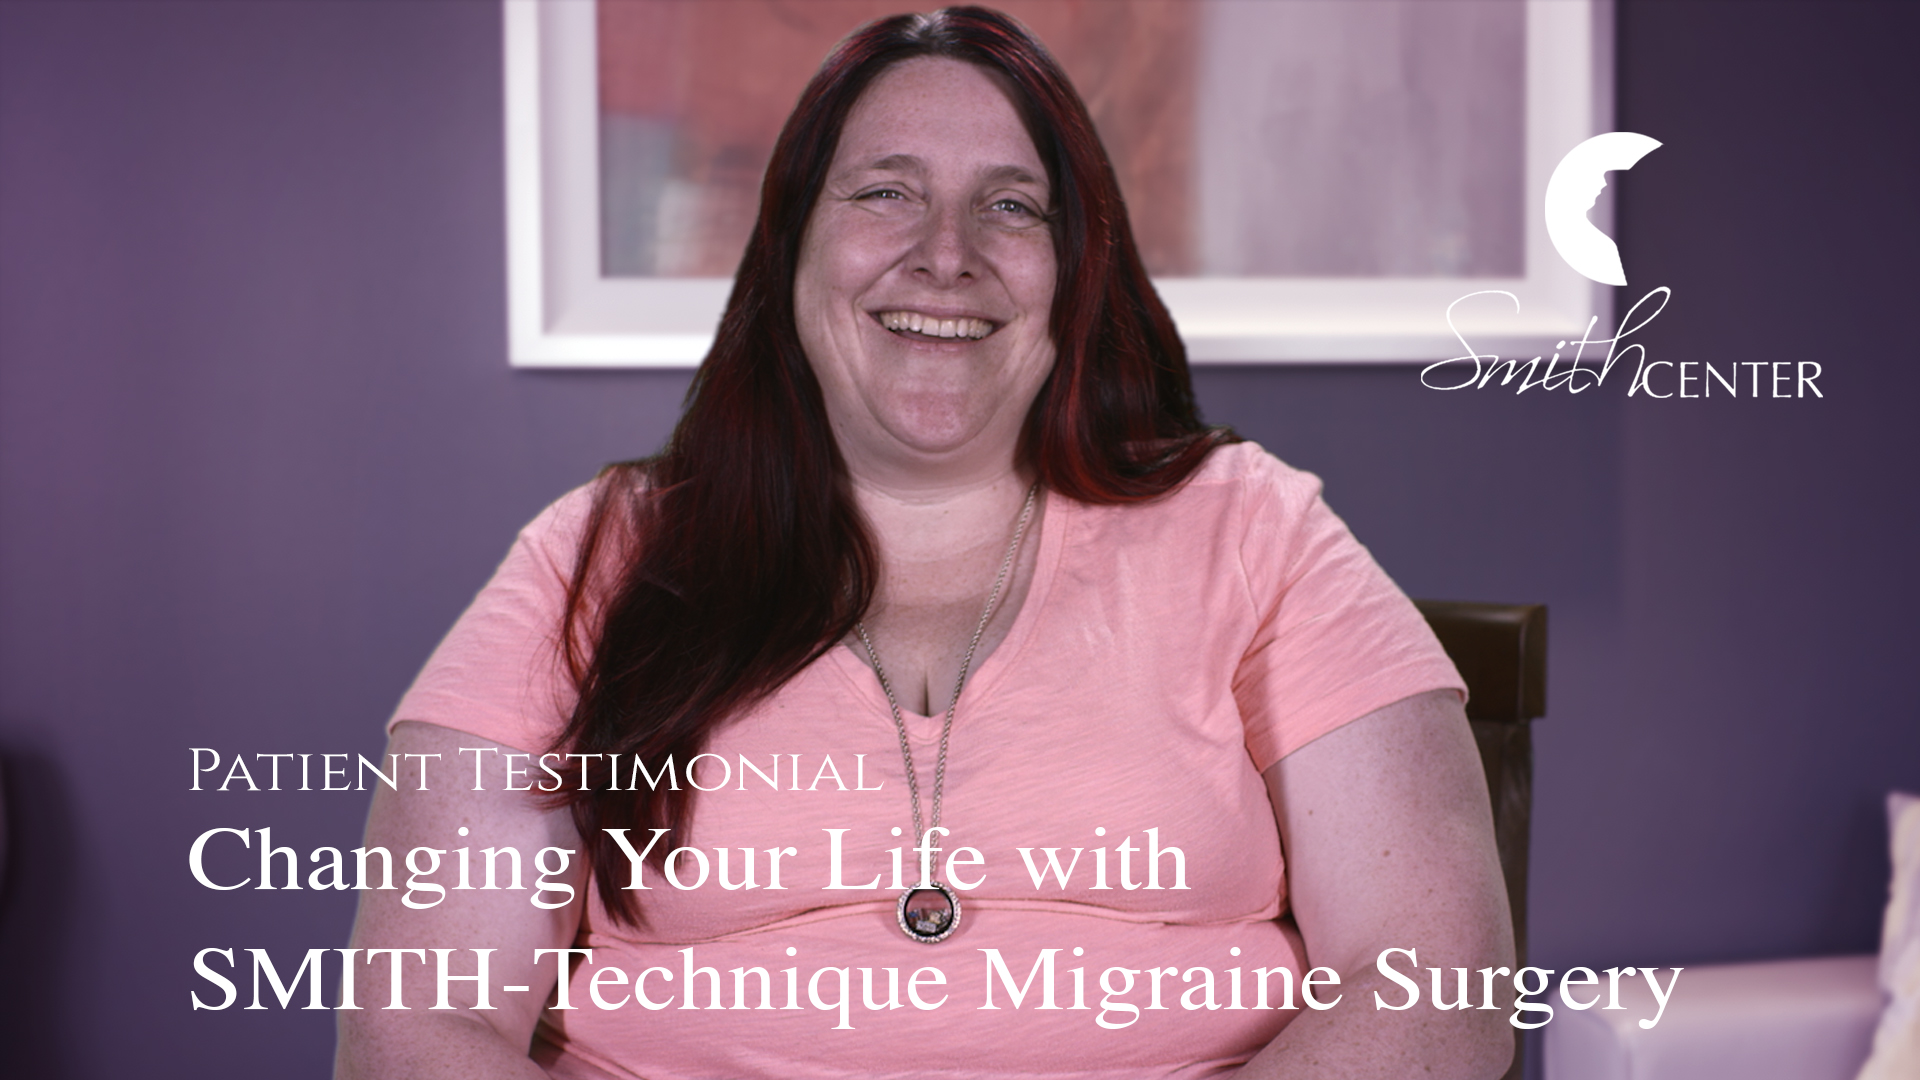 SMITH-Technique migraine surgery